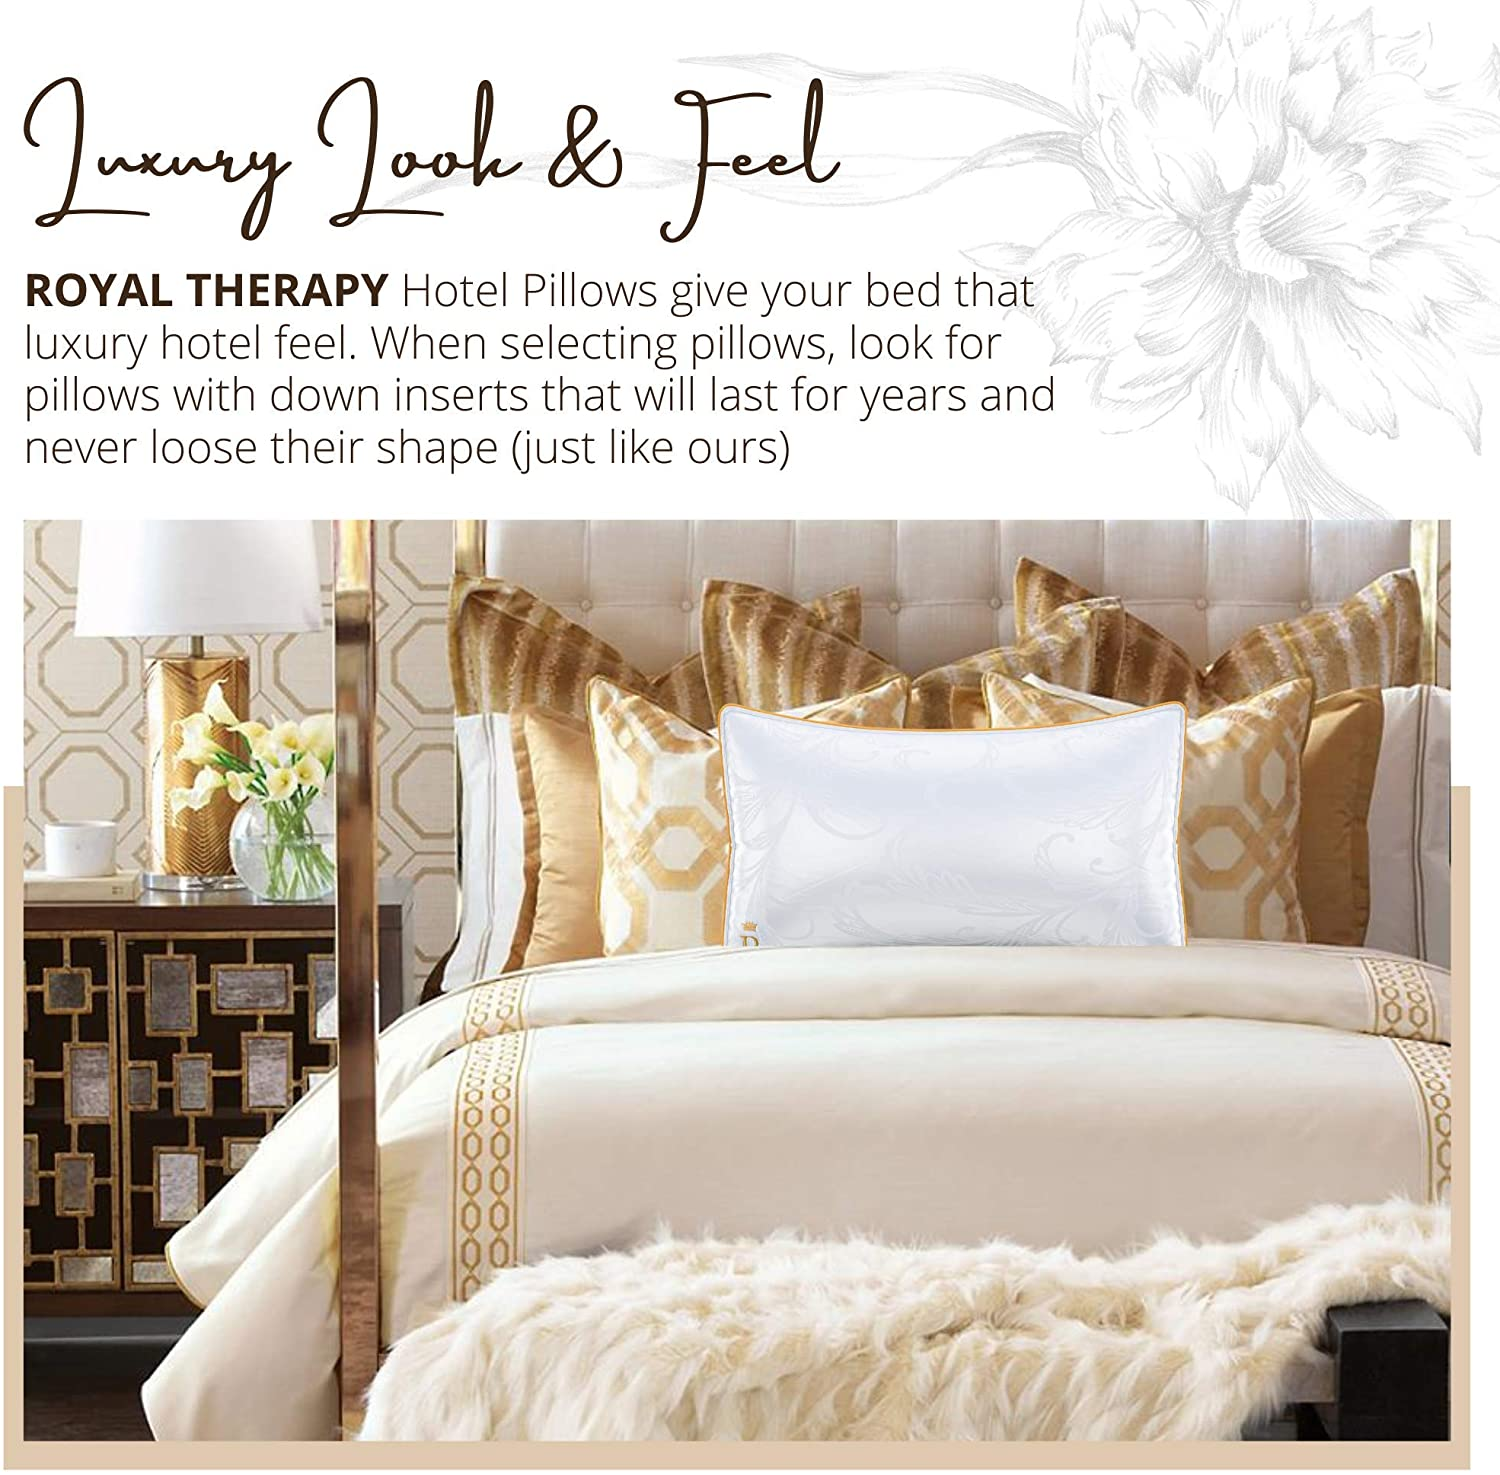 A Set of Premium Plush Gel Microfiber Down Alternative Hypoallergenic Bed Pillows Stomach /& Back Sleepers ROYAL THERAPY Queen Professional Hotel Pillows Double-Pack